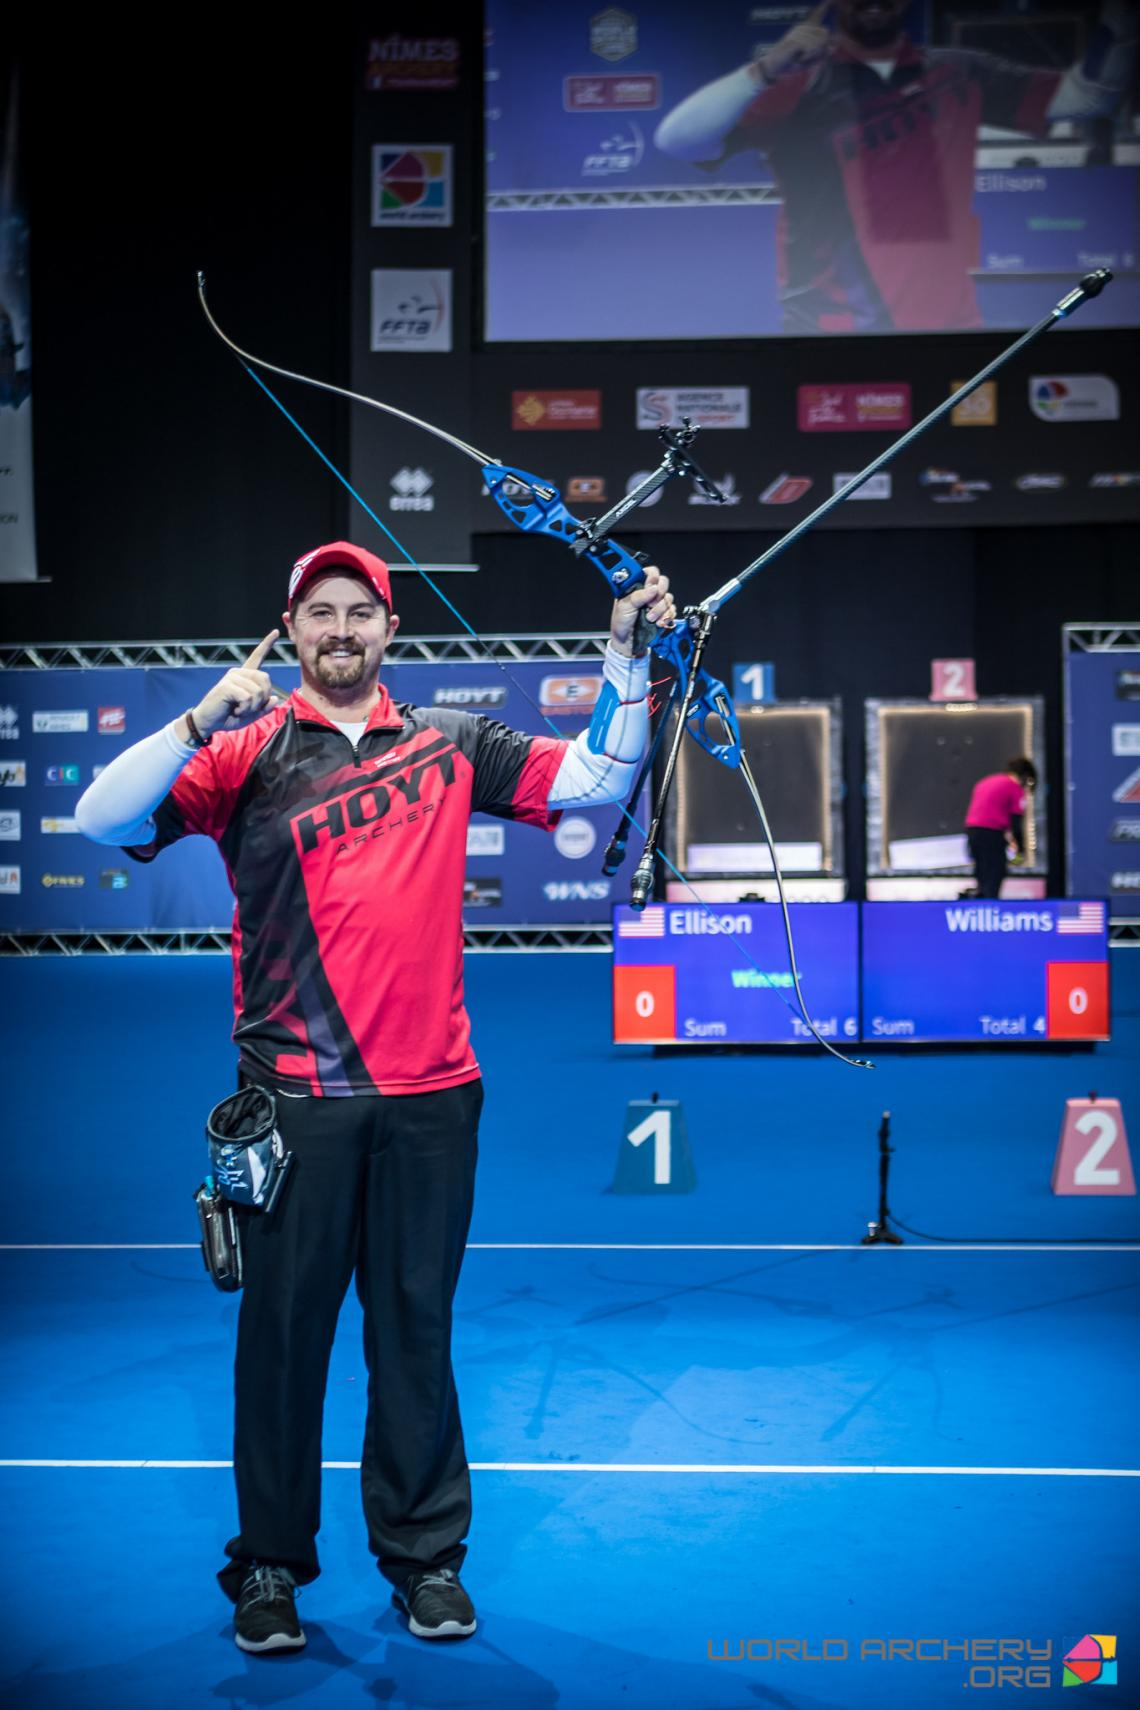 Brady Ellison celebrates after winning gold at the Sud de France – Nimes Archery Tournament in 2020.